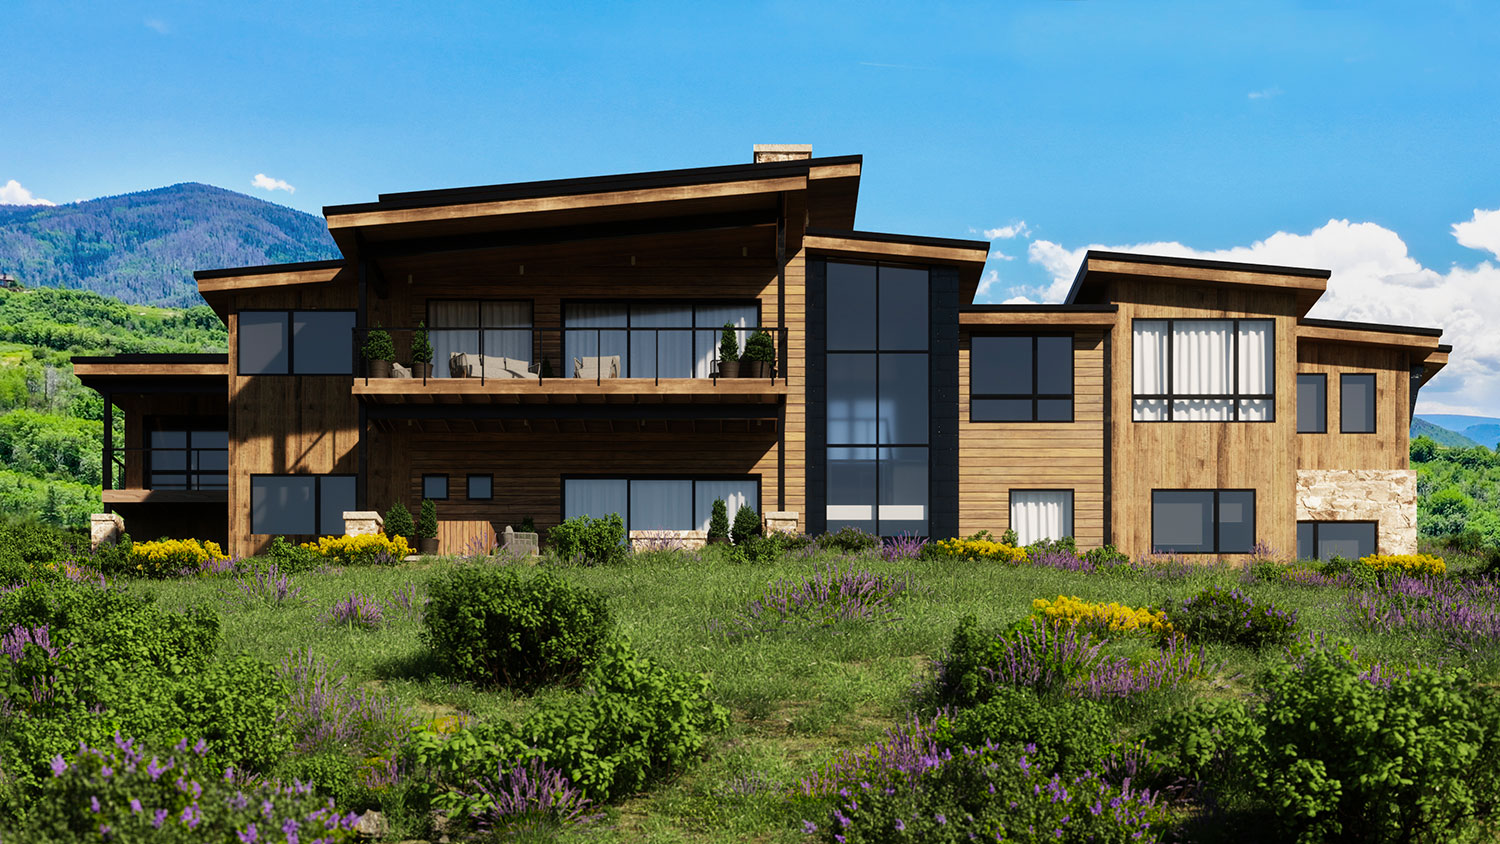 lot 17 spring 3 - Spring Kicks-Off Active Season of Home Building, Headlined by the Mountain Modern Trilogy Residence